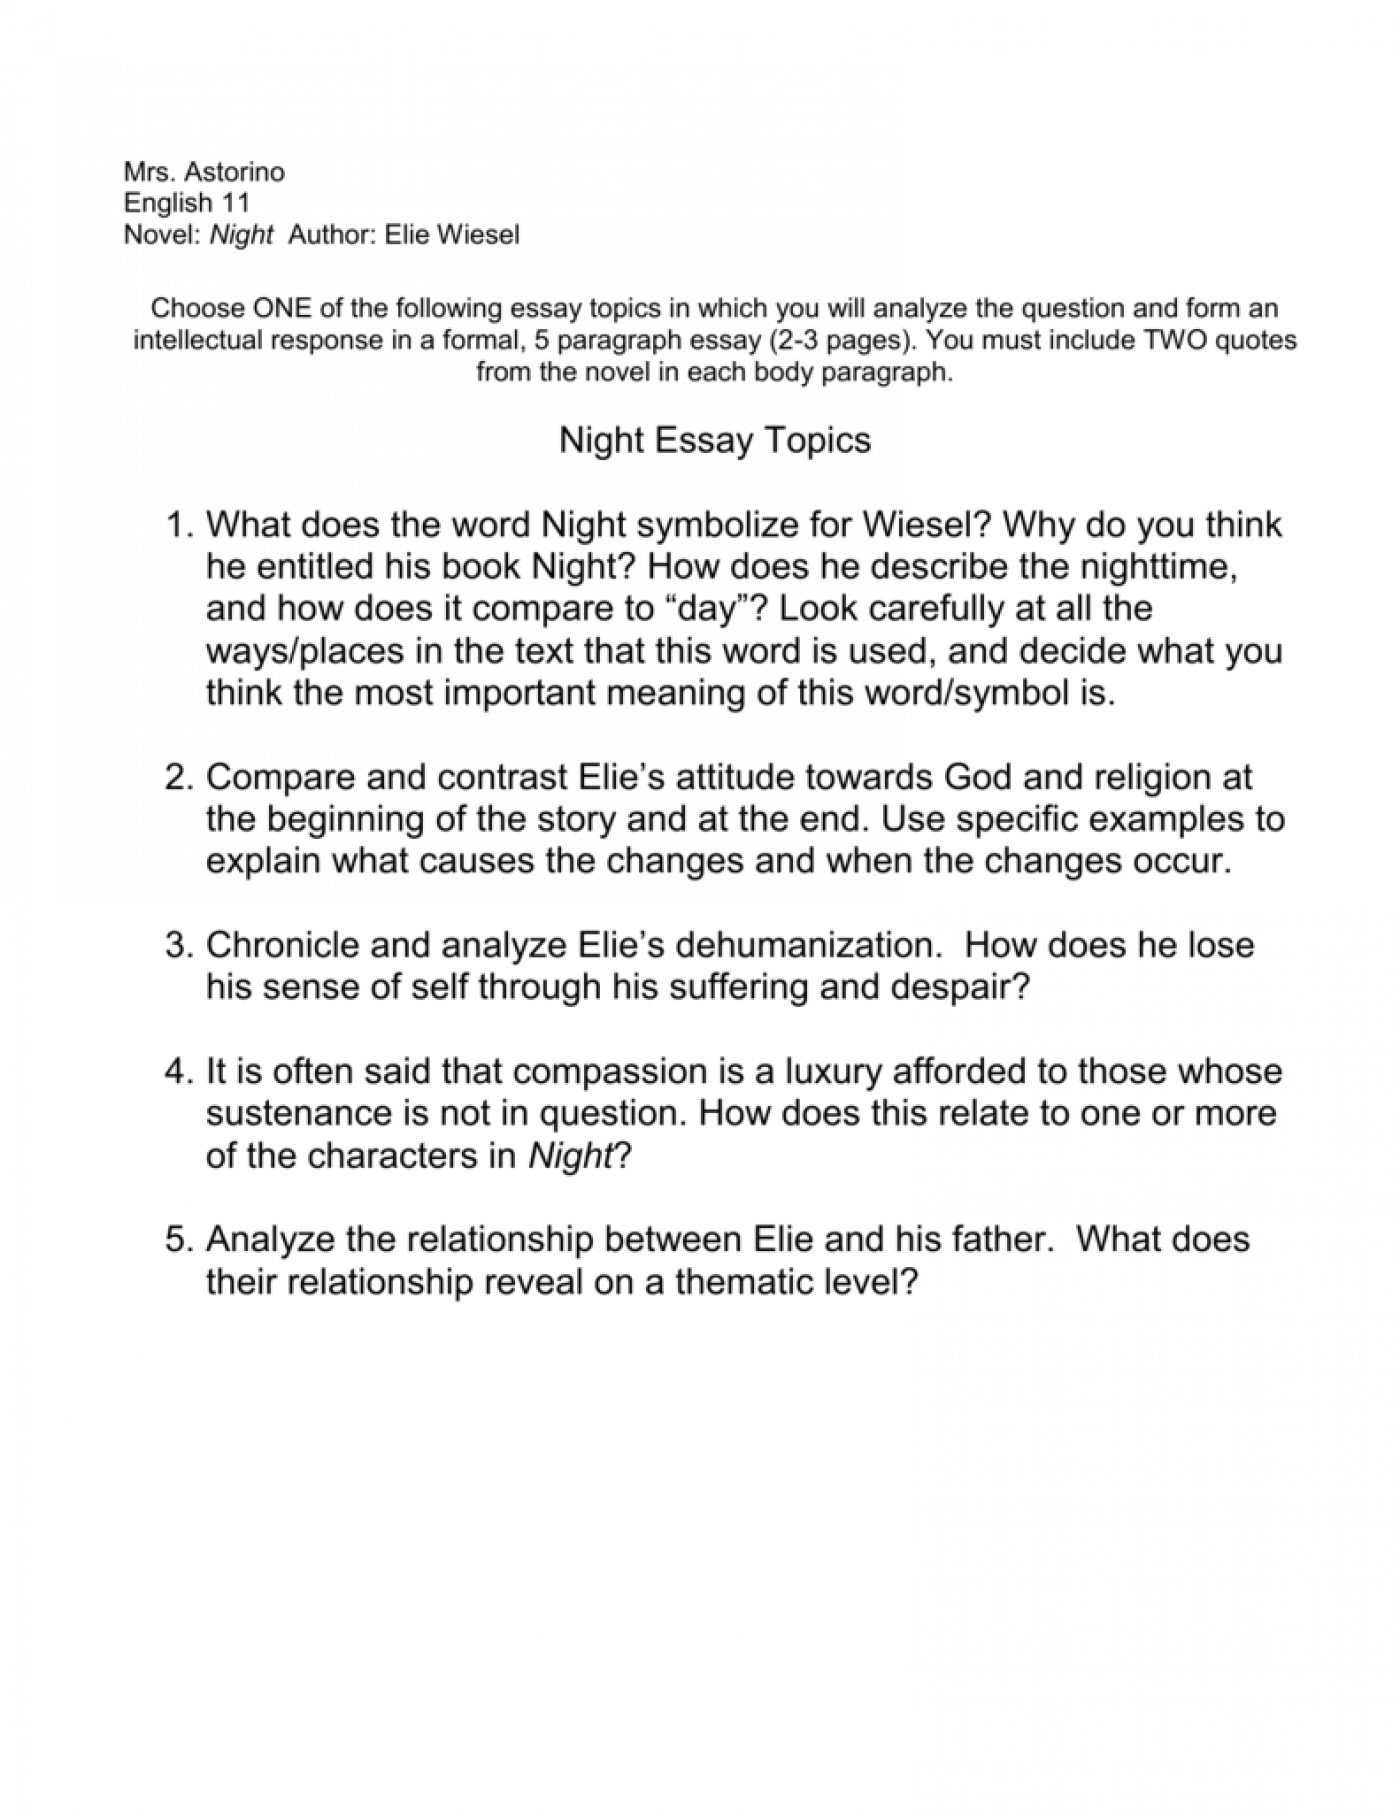 003 008045703 1 Essay Example Paragraph Best 5 Topics For High School Middle 1400